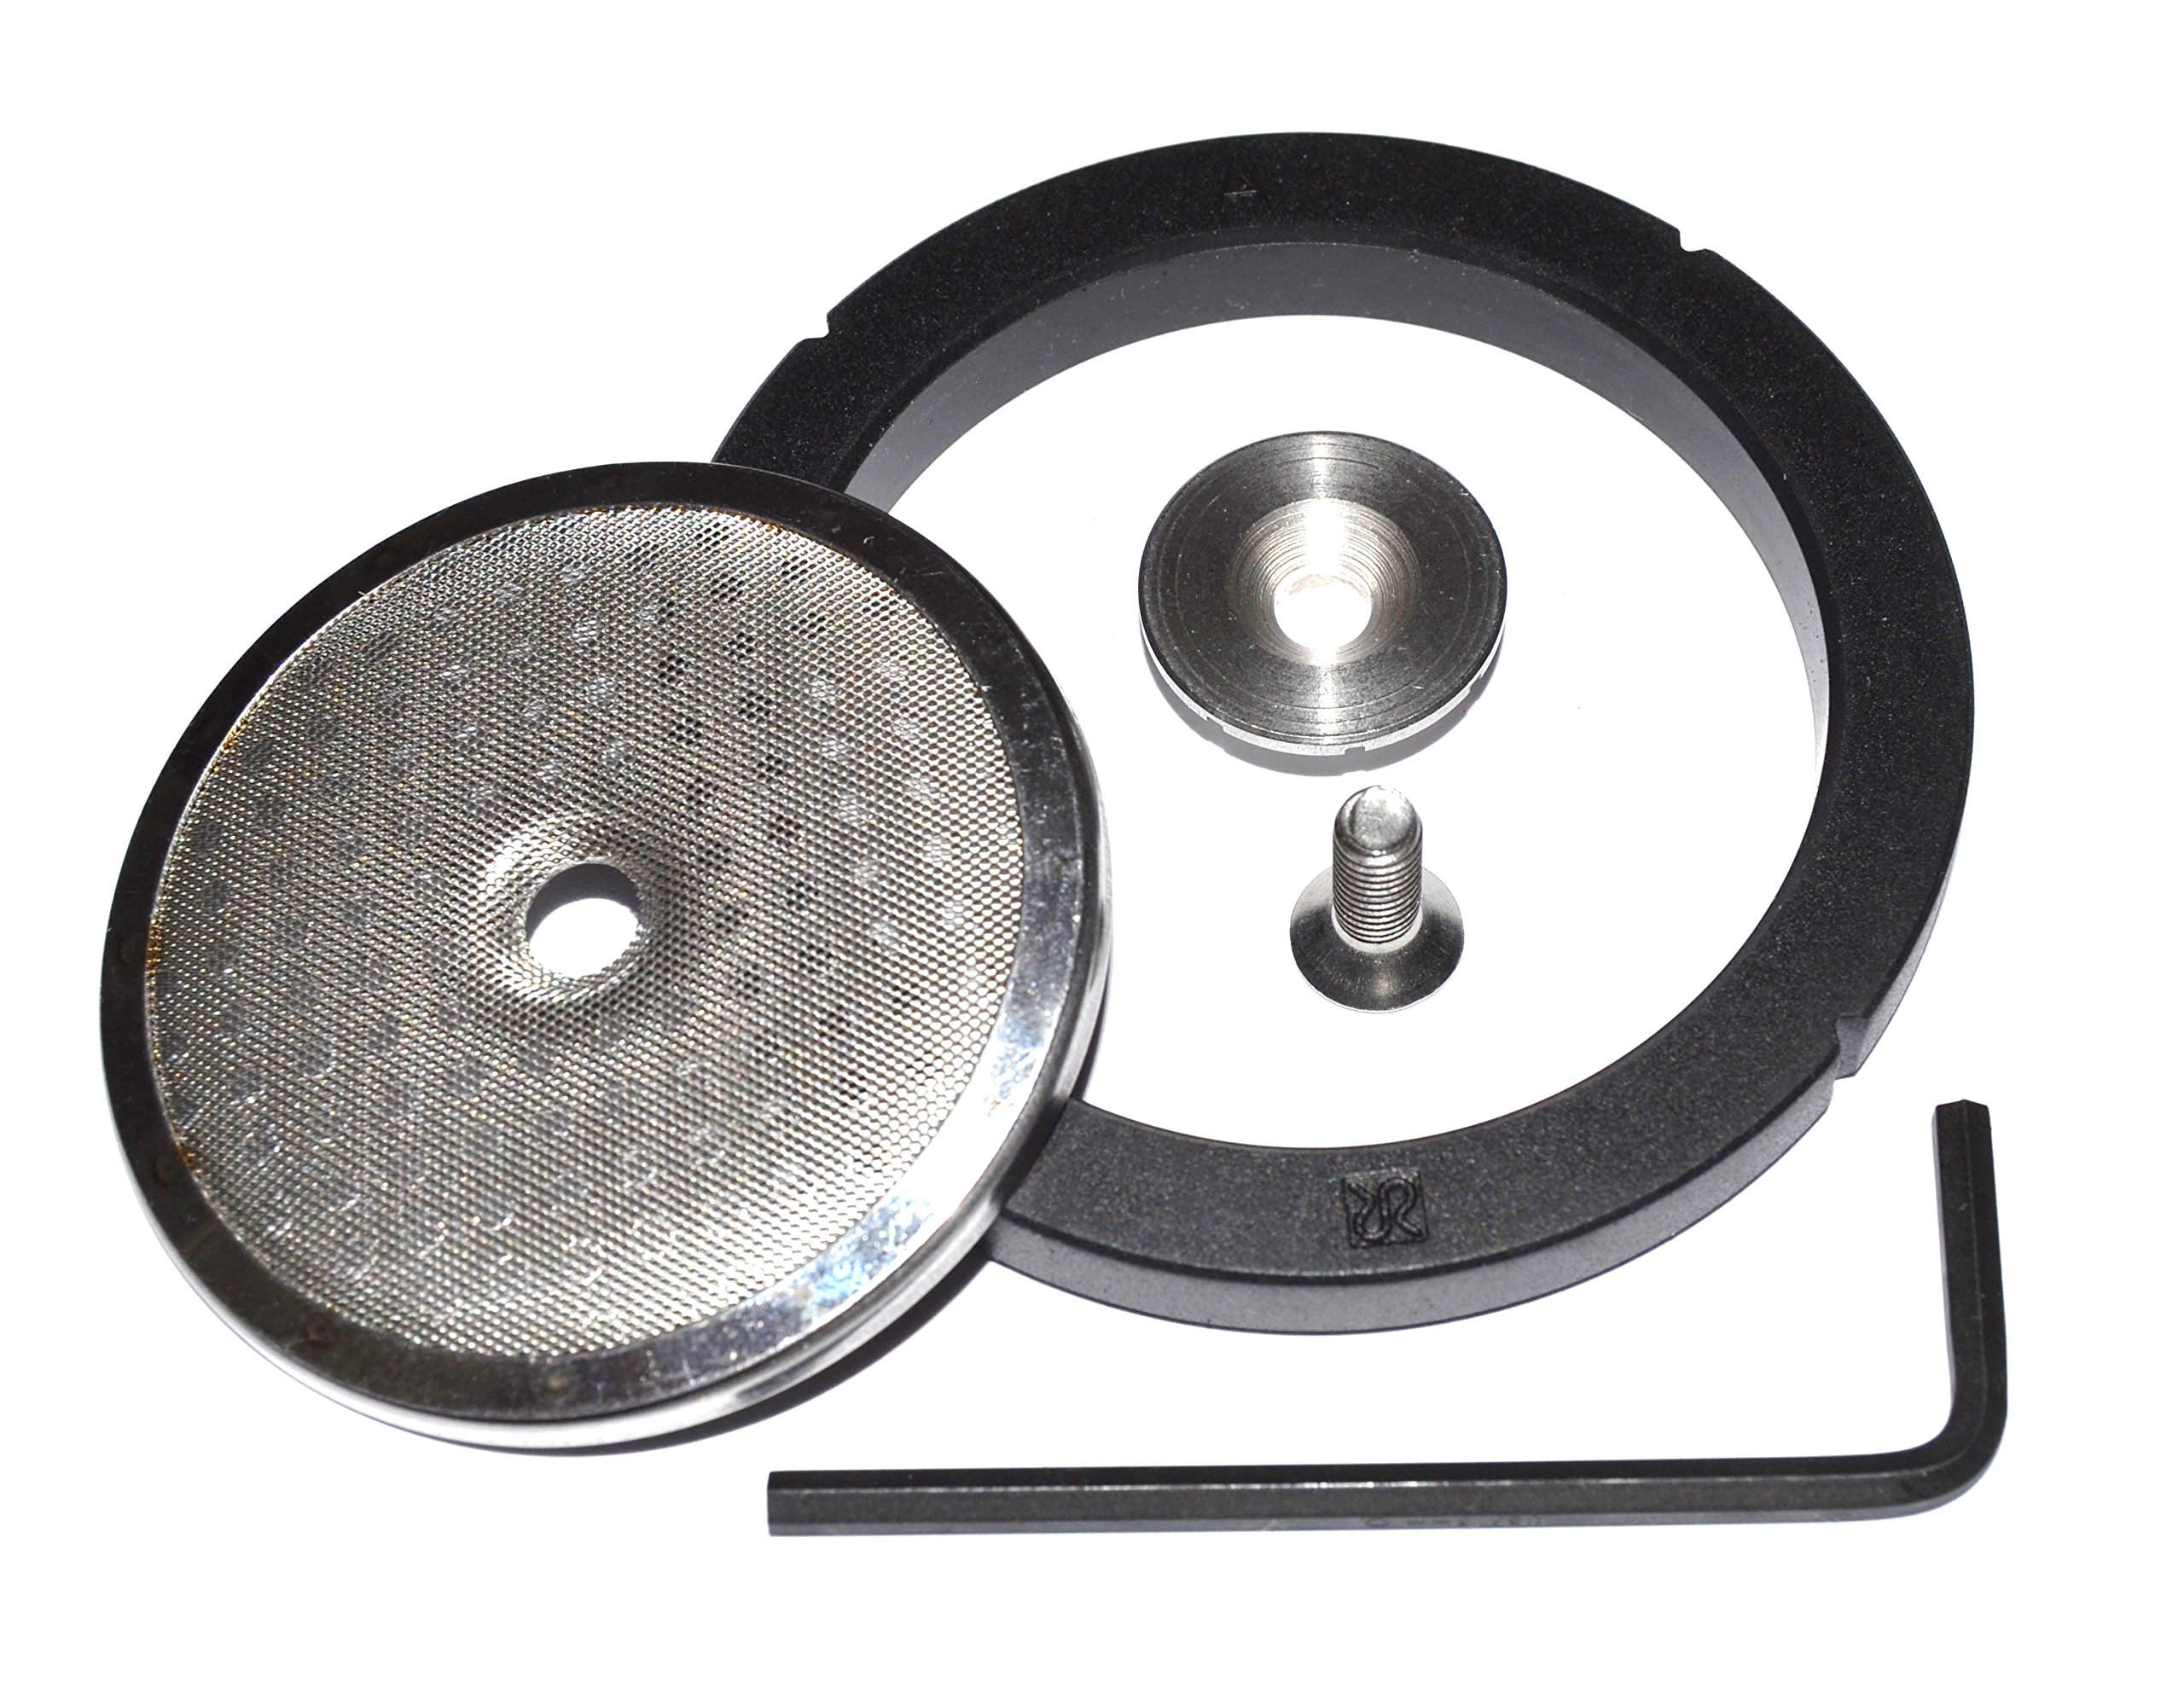 Flat Shower Screen Upgrade Kit for the Rancilio Silvia